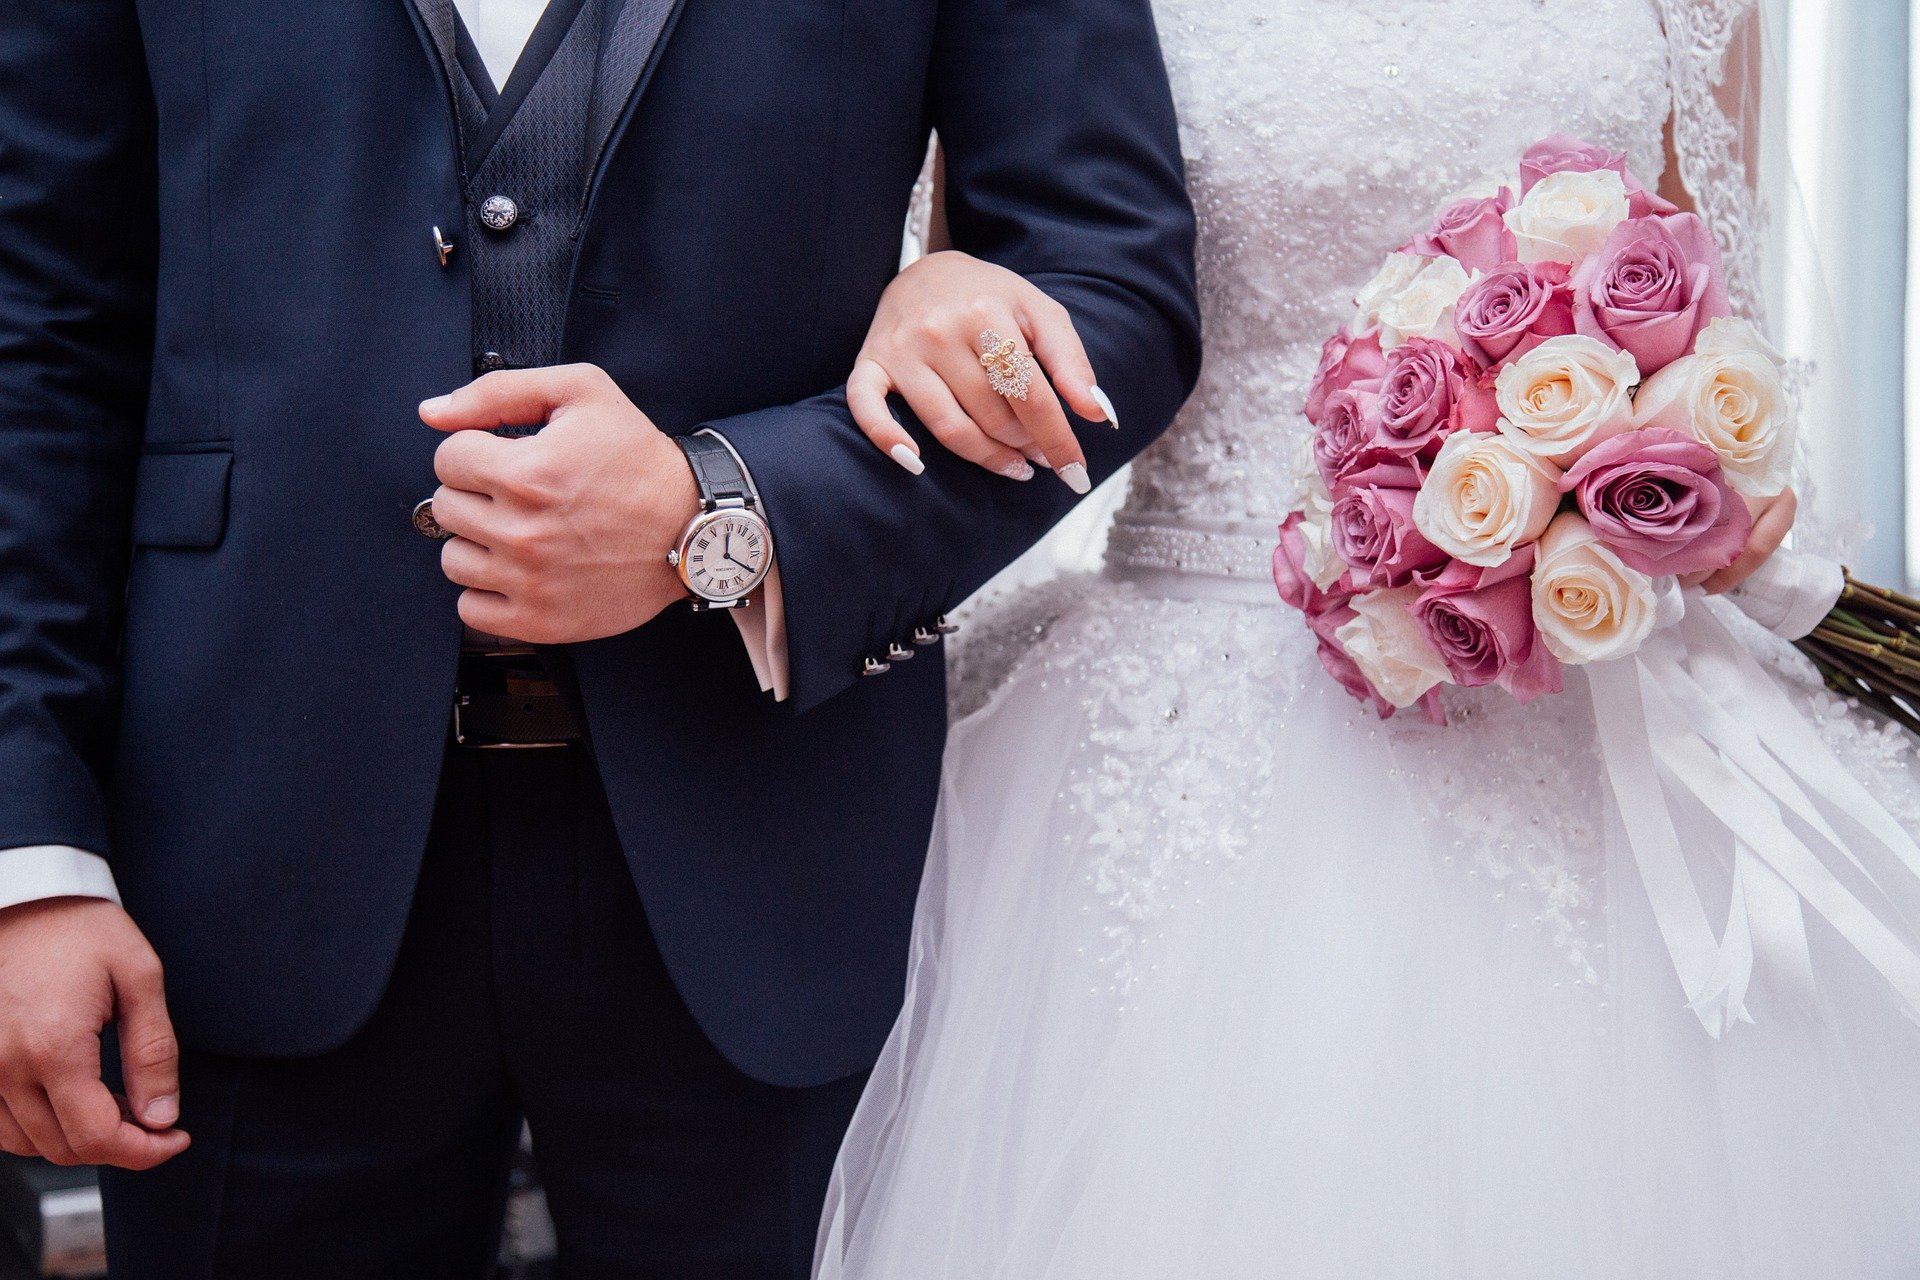 how much does it cost to marry a Russian woman